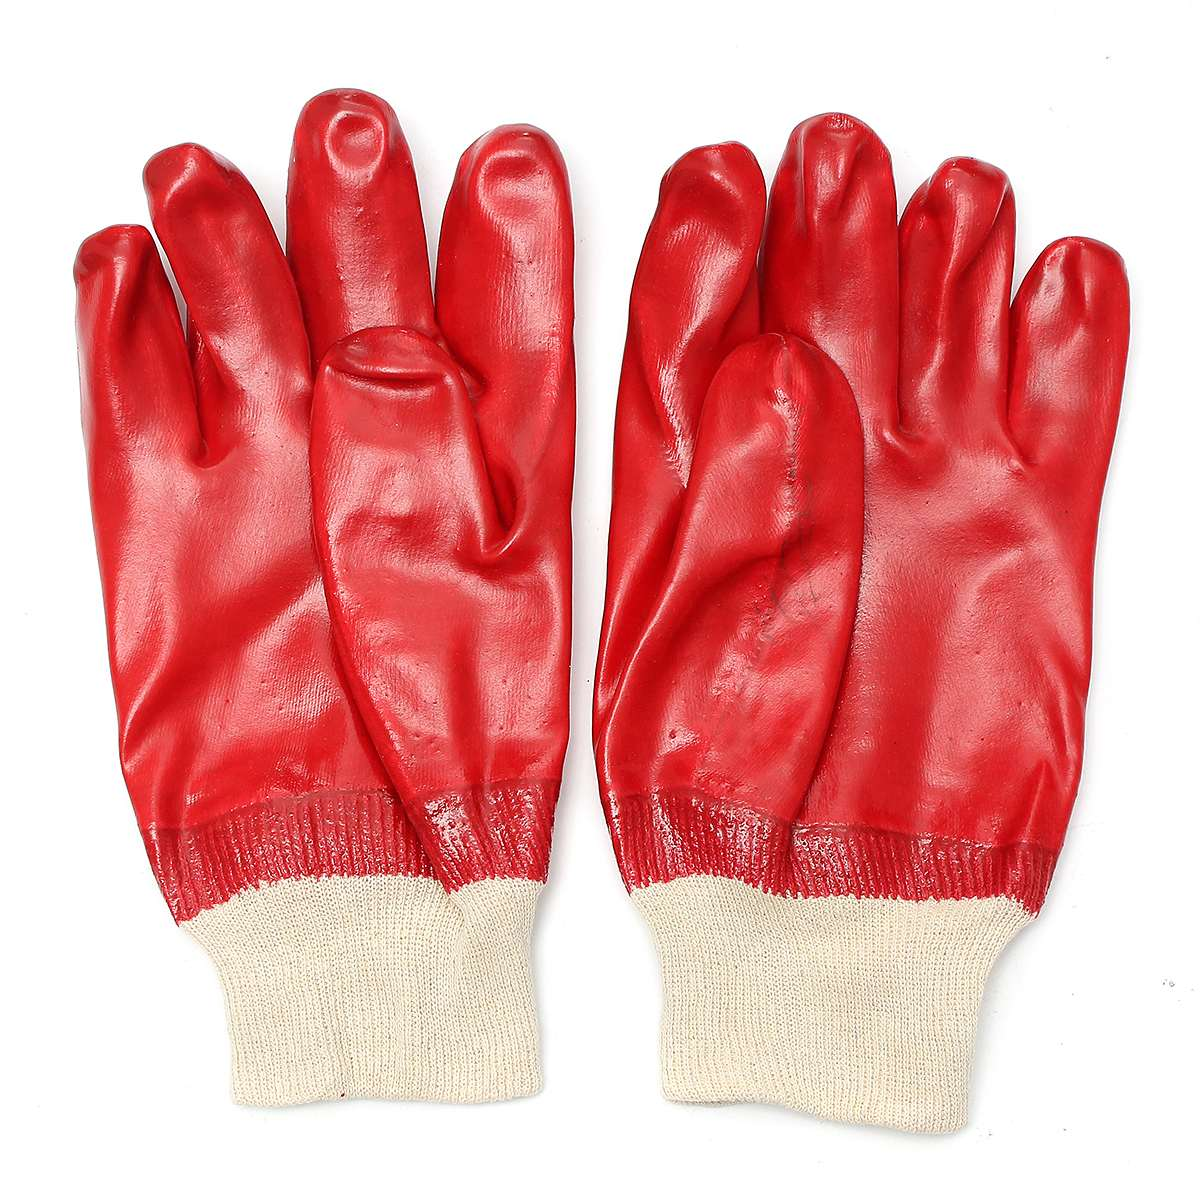 NEW 12 Pairs PVC Gloves Knitted Wrist Red Chemical Safety Anti skid Waterproof Workplace Safety Hand Protection simplicity wholesale 2pr set knitted touchscreen gloves